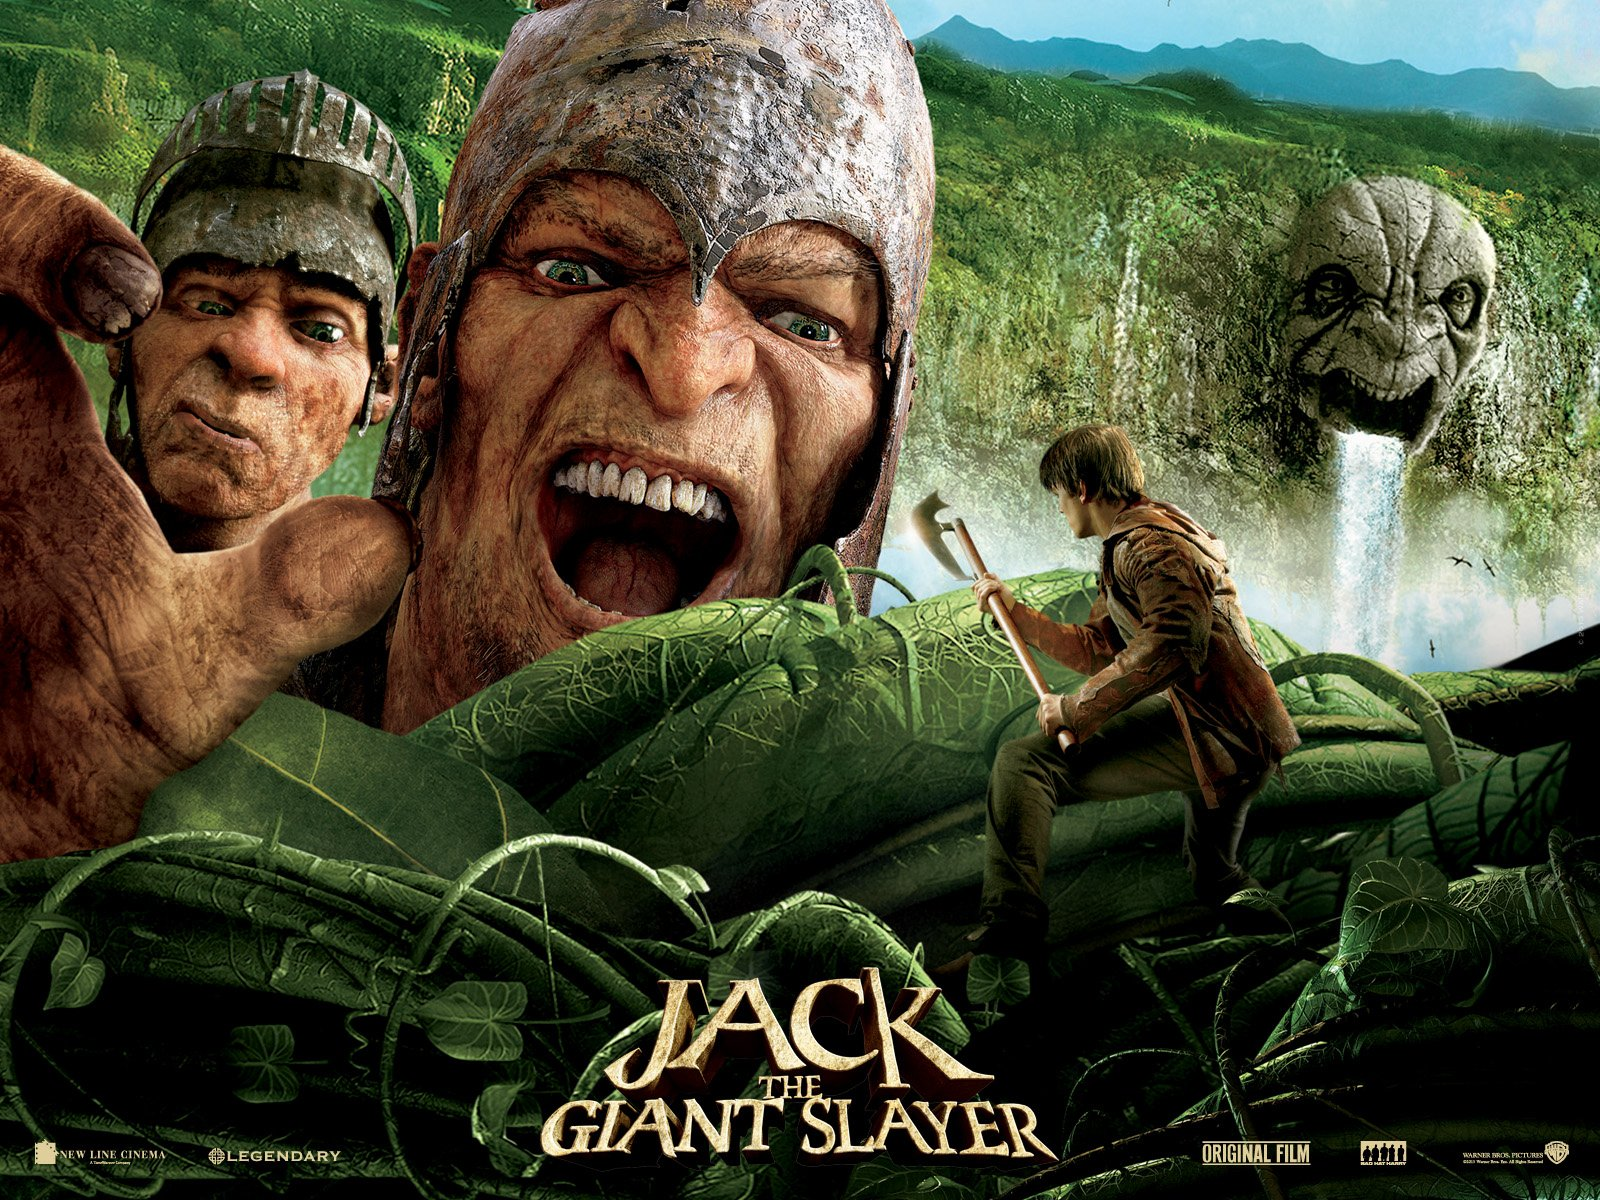 http://eskipaper.com/images/jack-the-giant-slayer-1.jpg